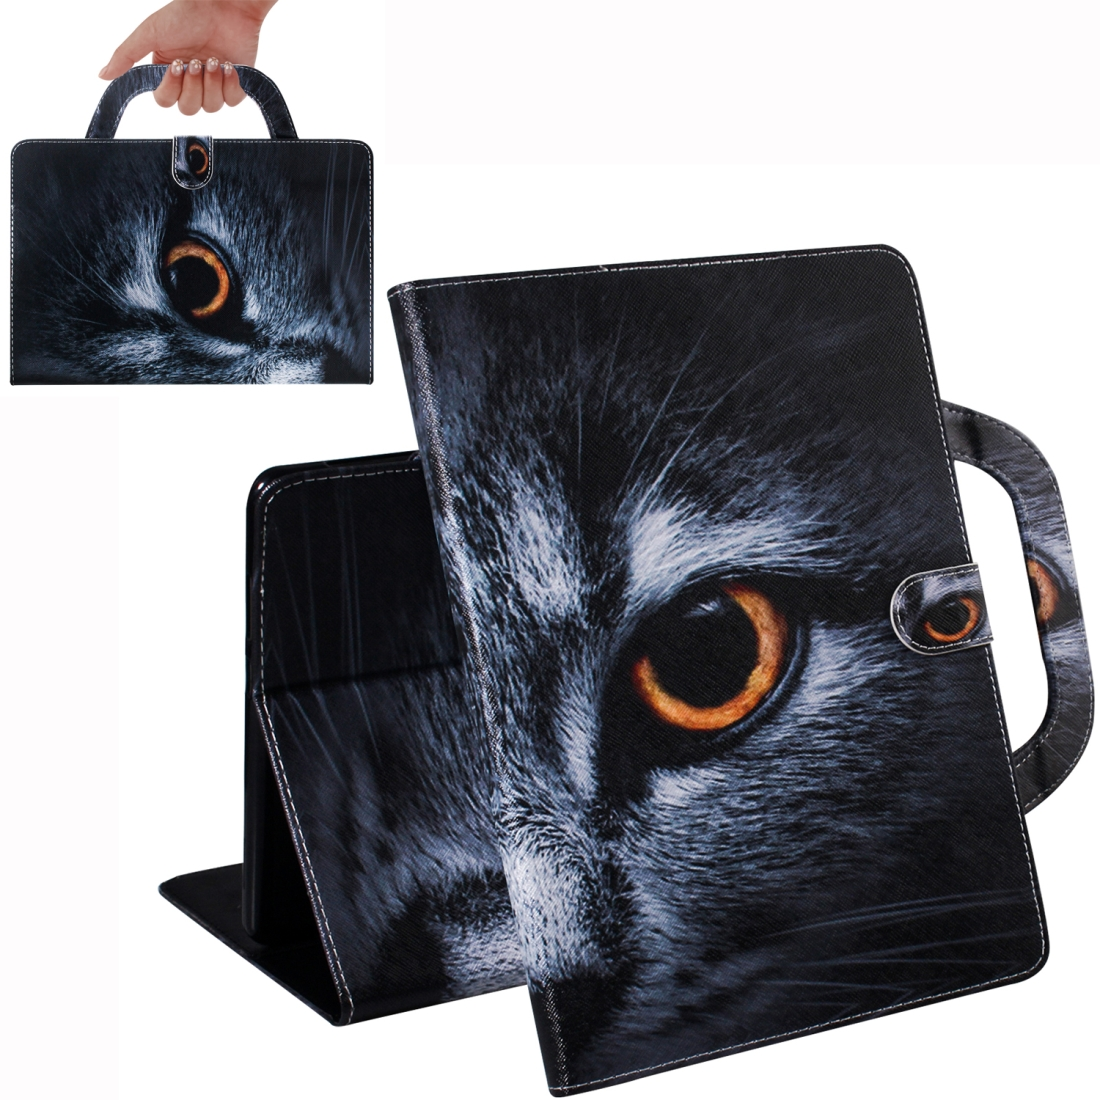 iiPad Air Kids Case, Fits iPad Air 2019, iPad 10.2 & iPad 10.5, Artsy Leather Design (Cat Face)